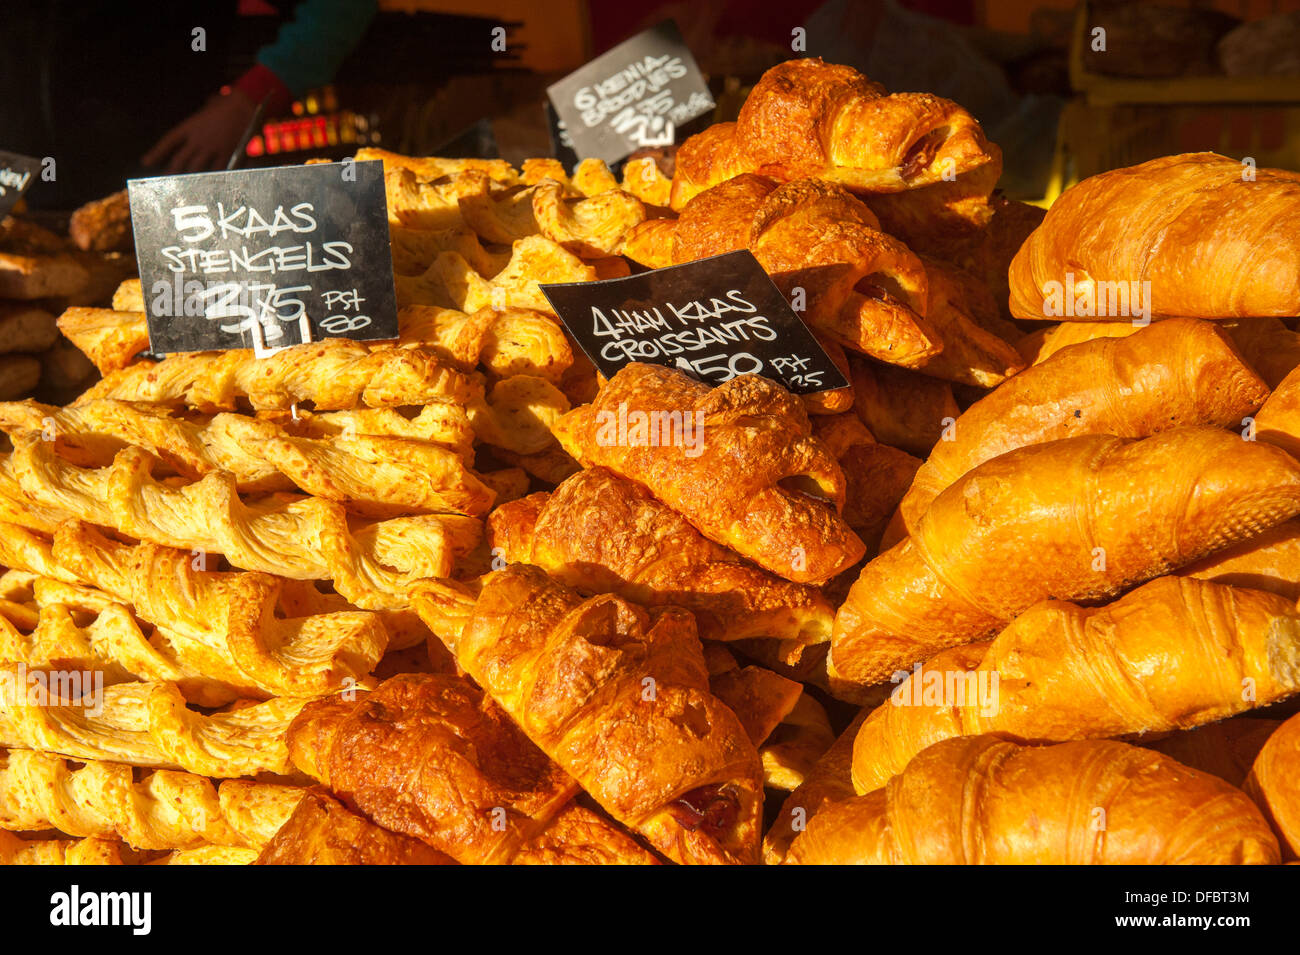 Croissants and Dutch Kaas Stengels sold on the market in Amersfoort, Netherlands - Stock Image